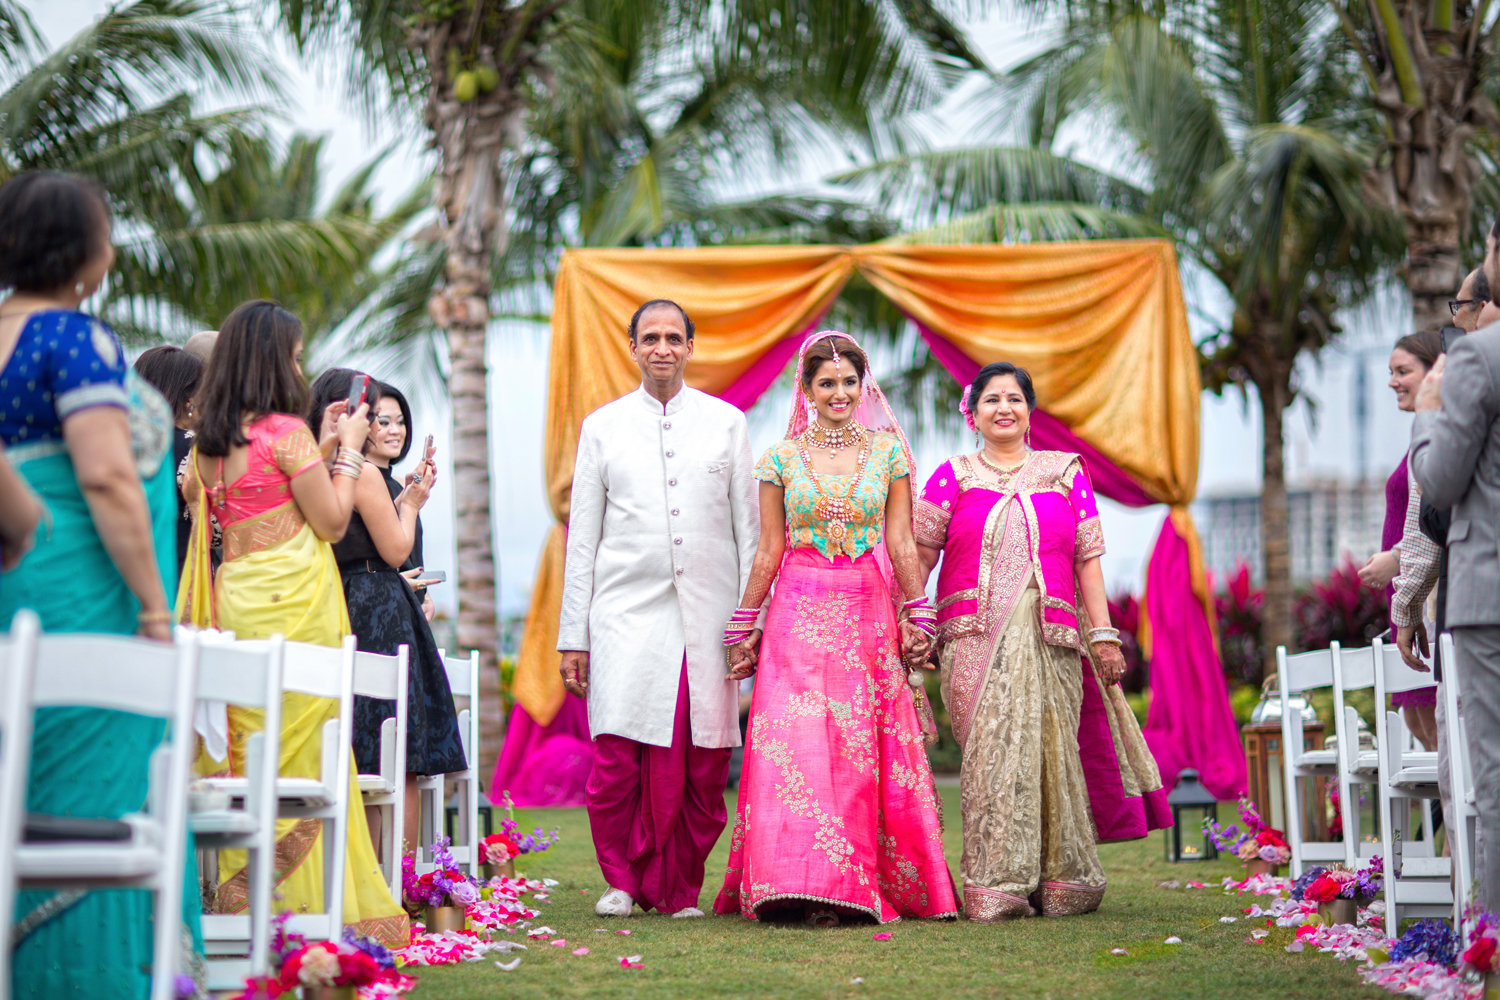 Indian bride in turquoise and pink sari and lehenga with parents walking down aisle